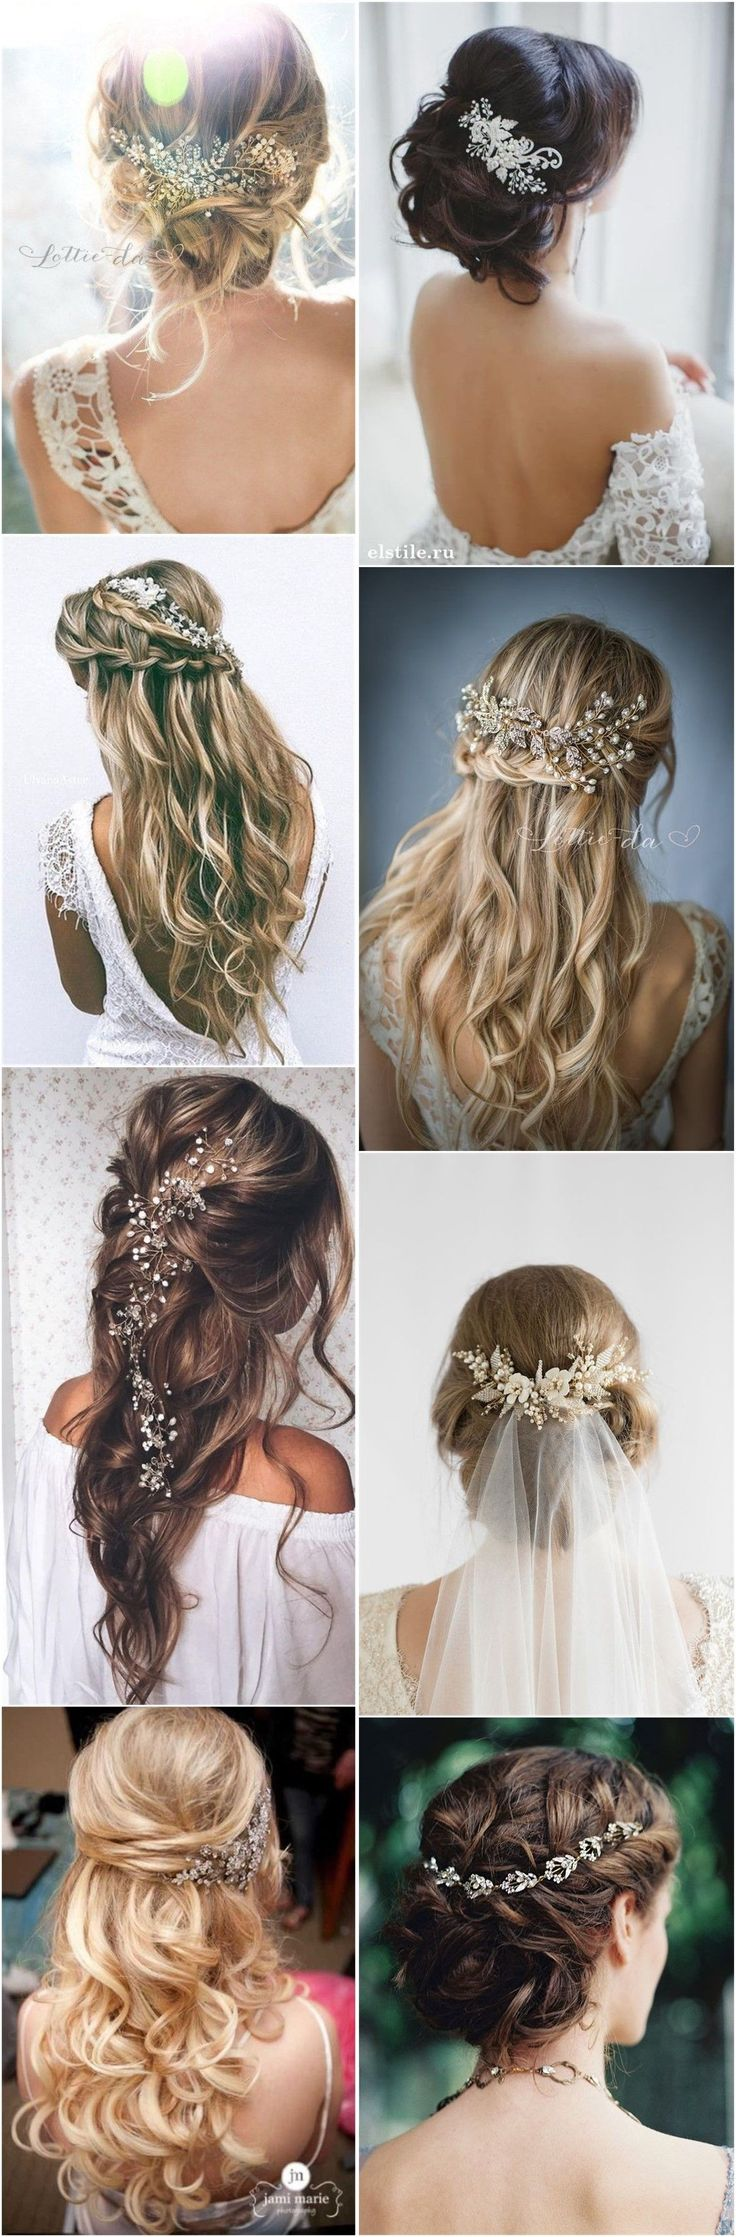 Hair accessories catalog request - Hair Comes The Bride 20 Bridal Hair Accessories Get Style Advice For Any Budget